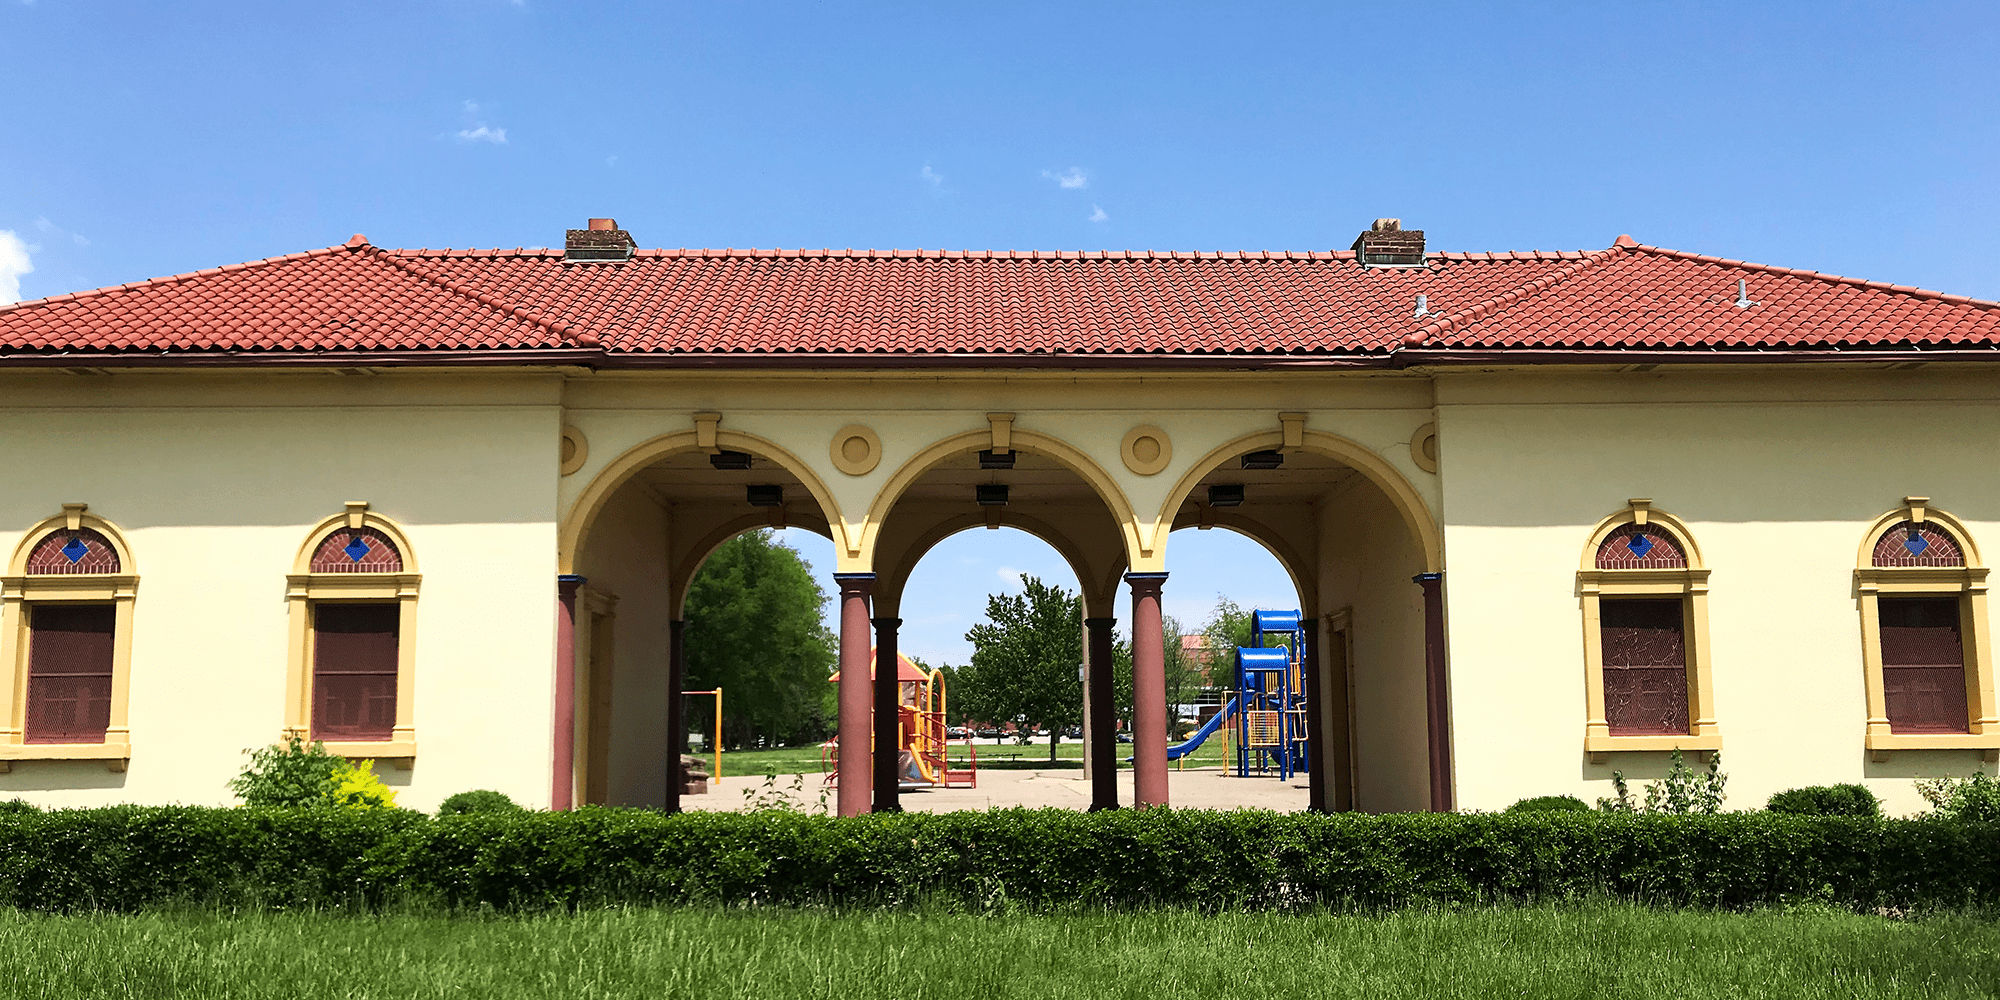 The pavilion at Minnie Wood Memorial Square. Photo by Nick Findley.